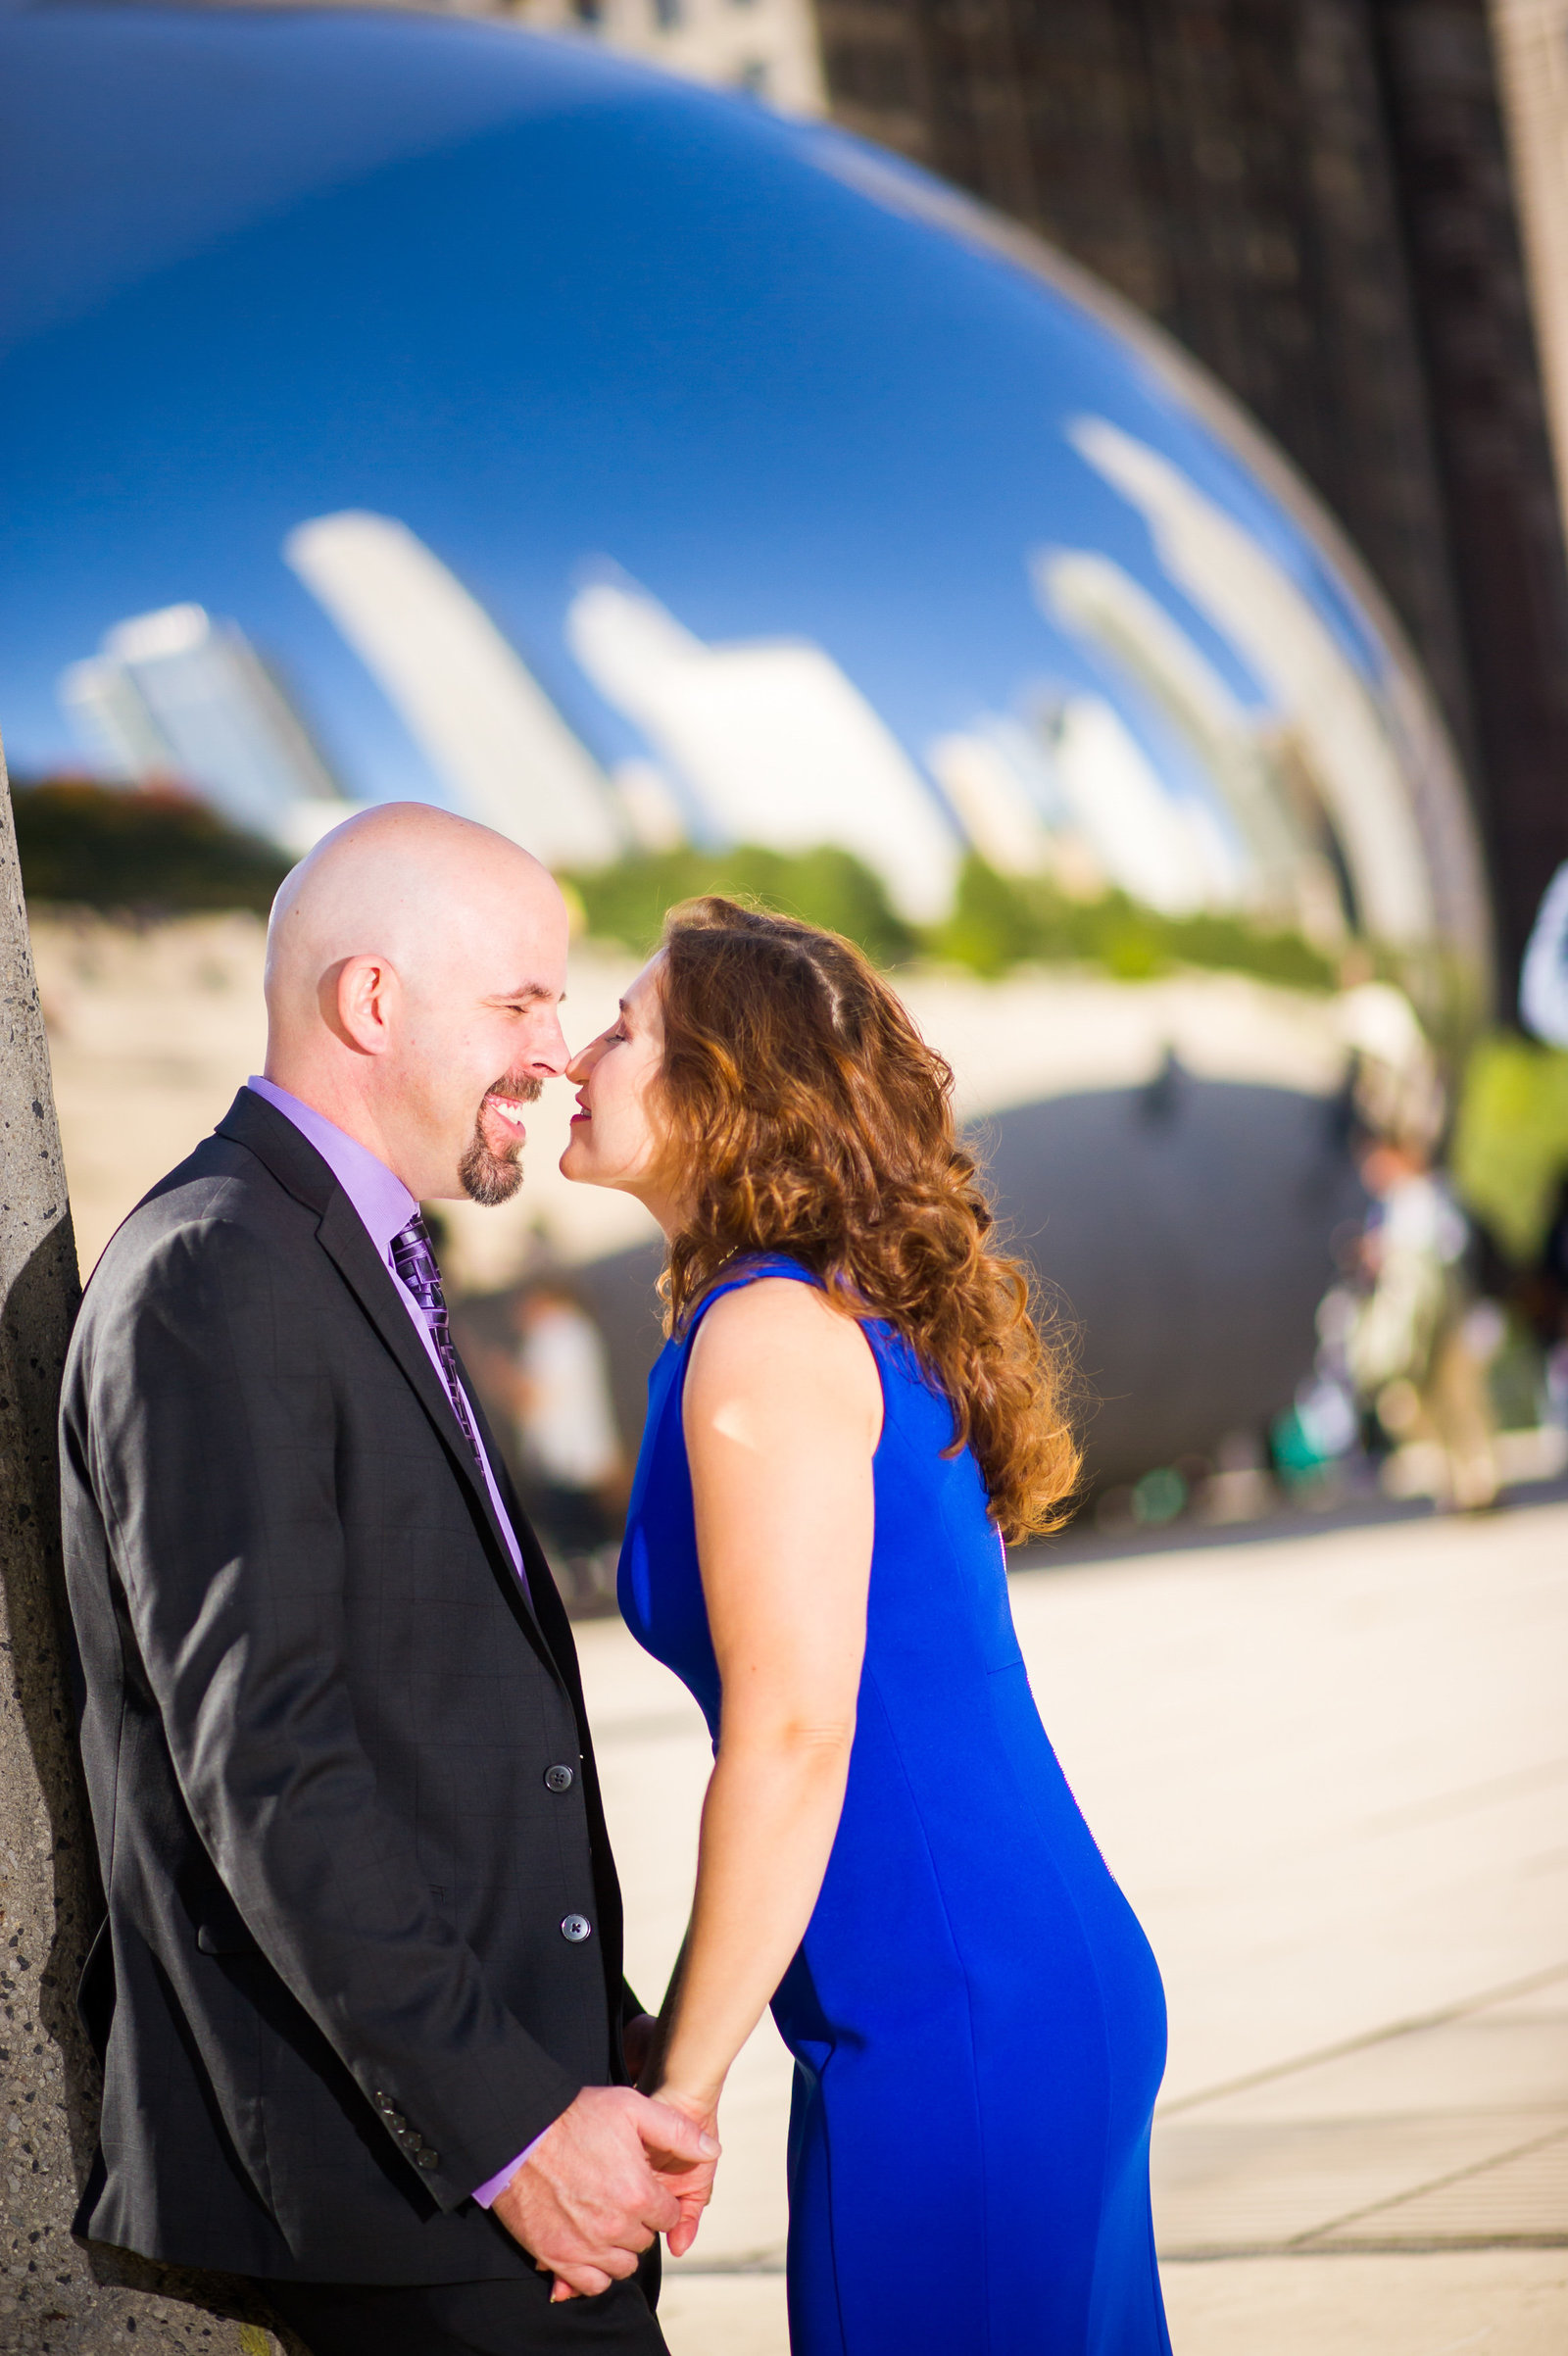 161023.AngelaGarbotPhotography.Chicago.Prewedding.Engagement.AnnaEric.076.Showit